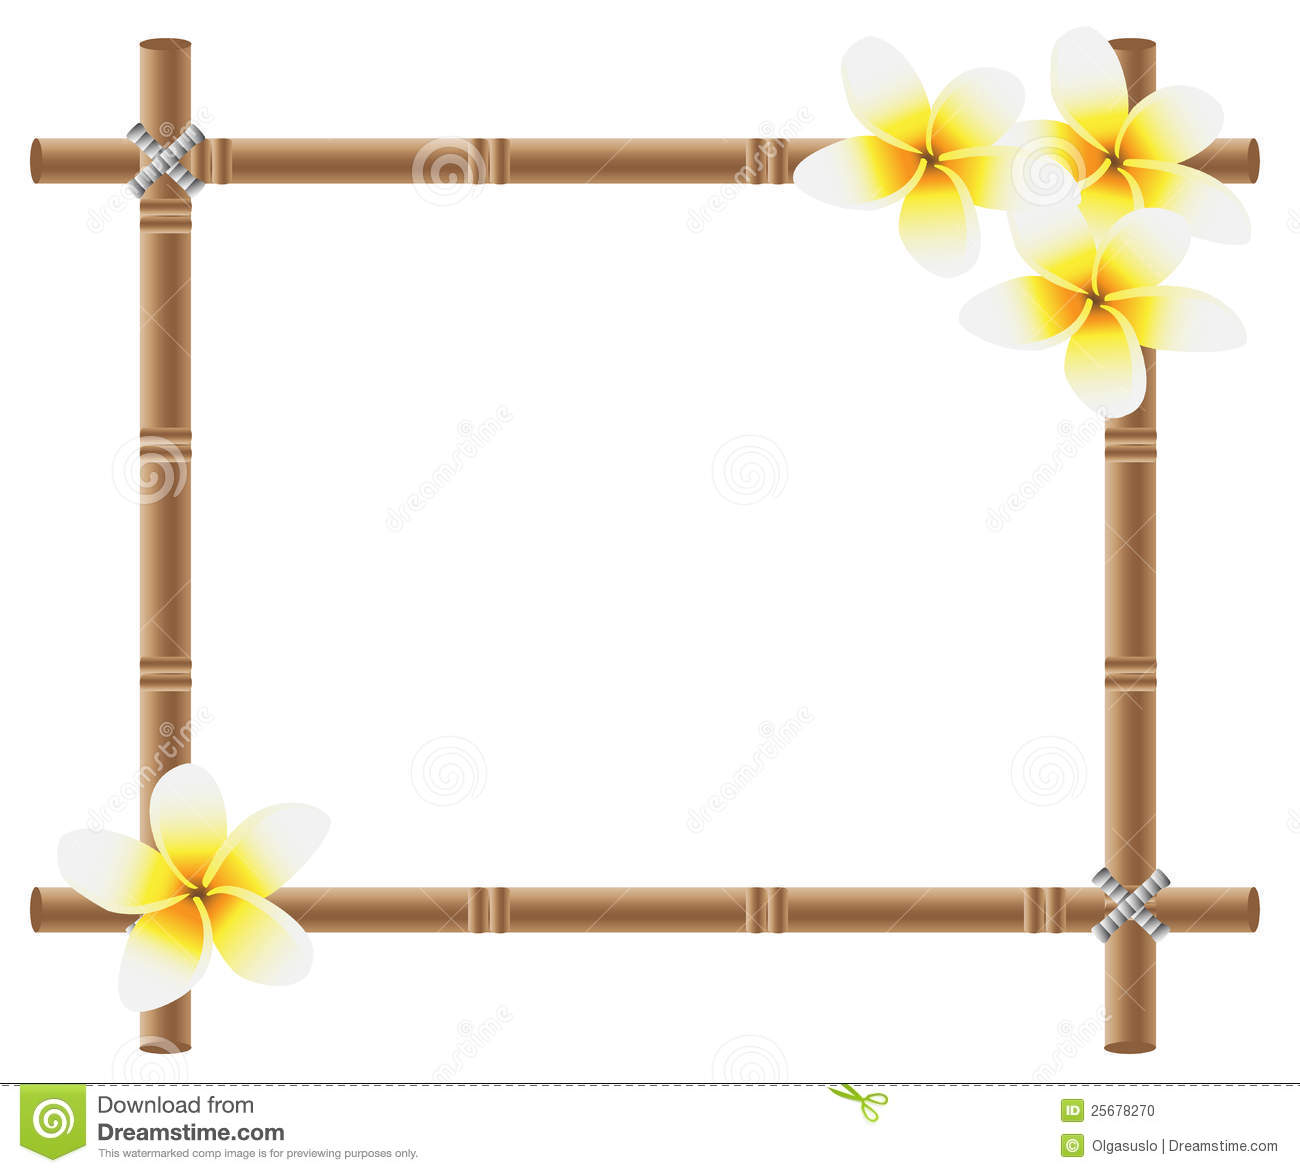 Bamboo Stick Stock Illustrations.